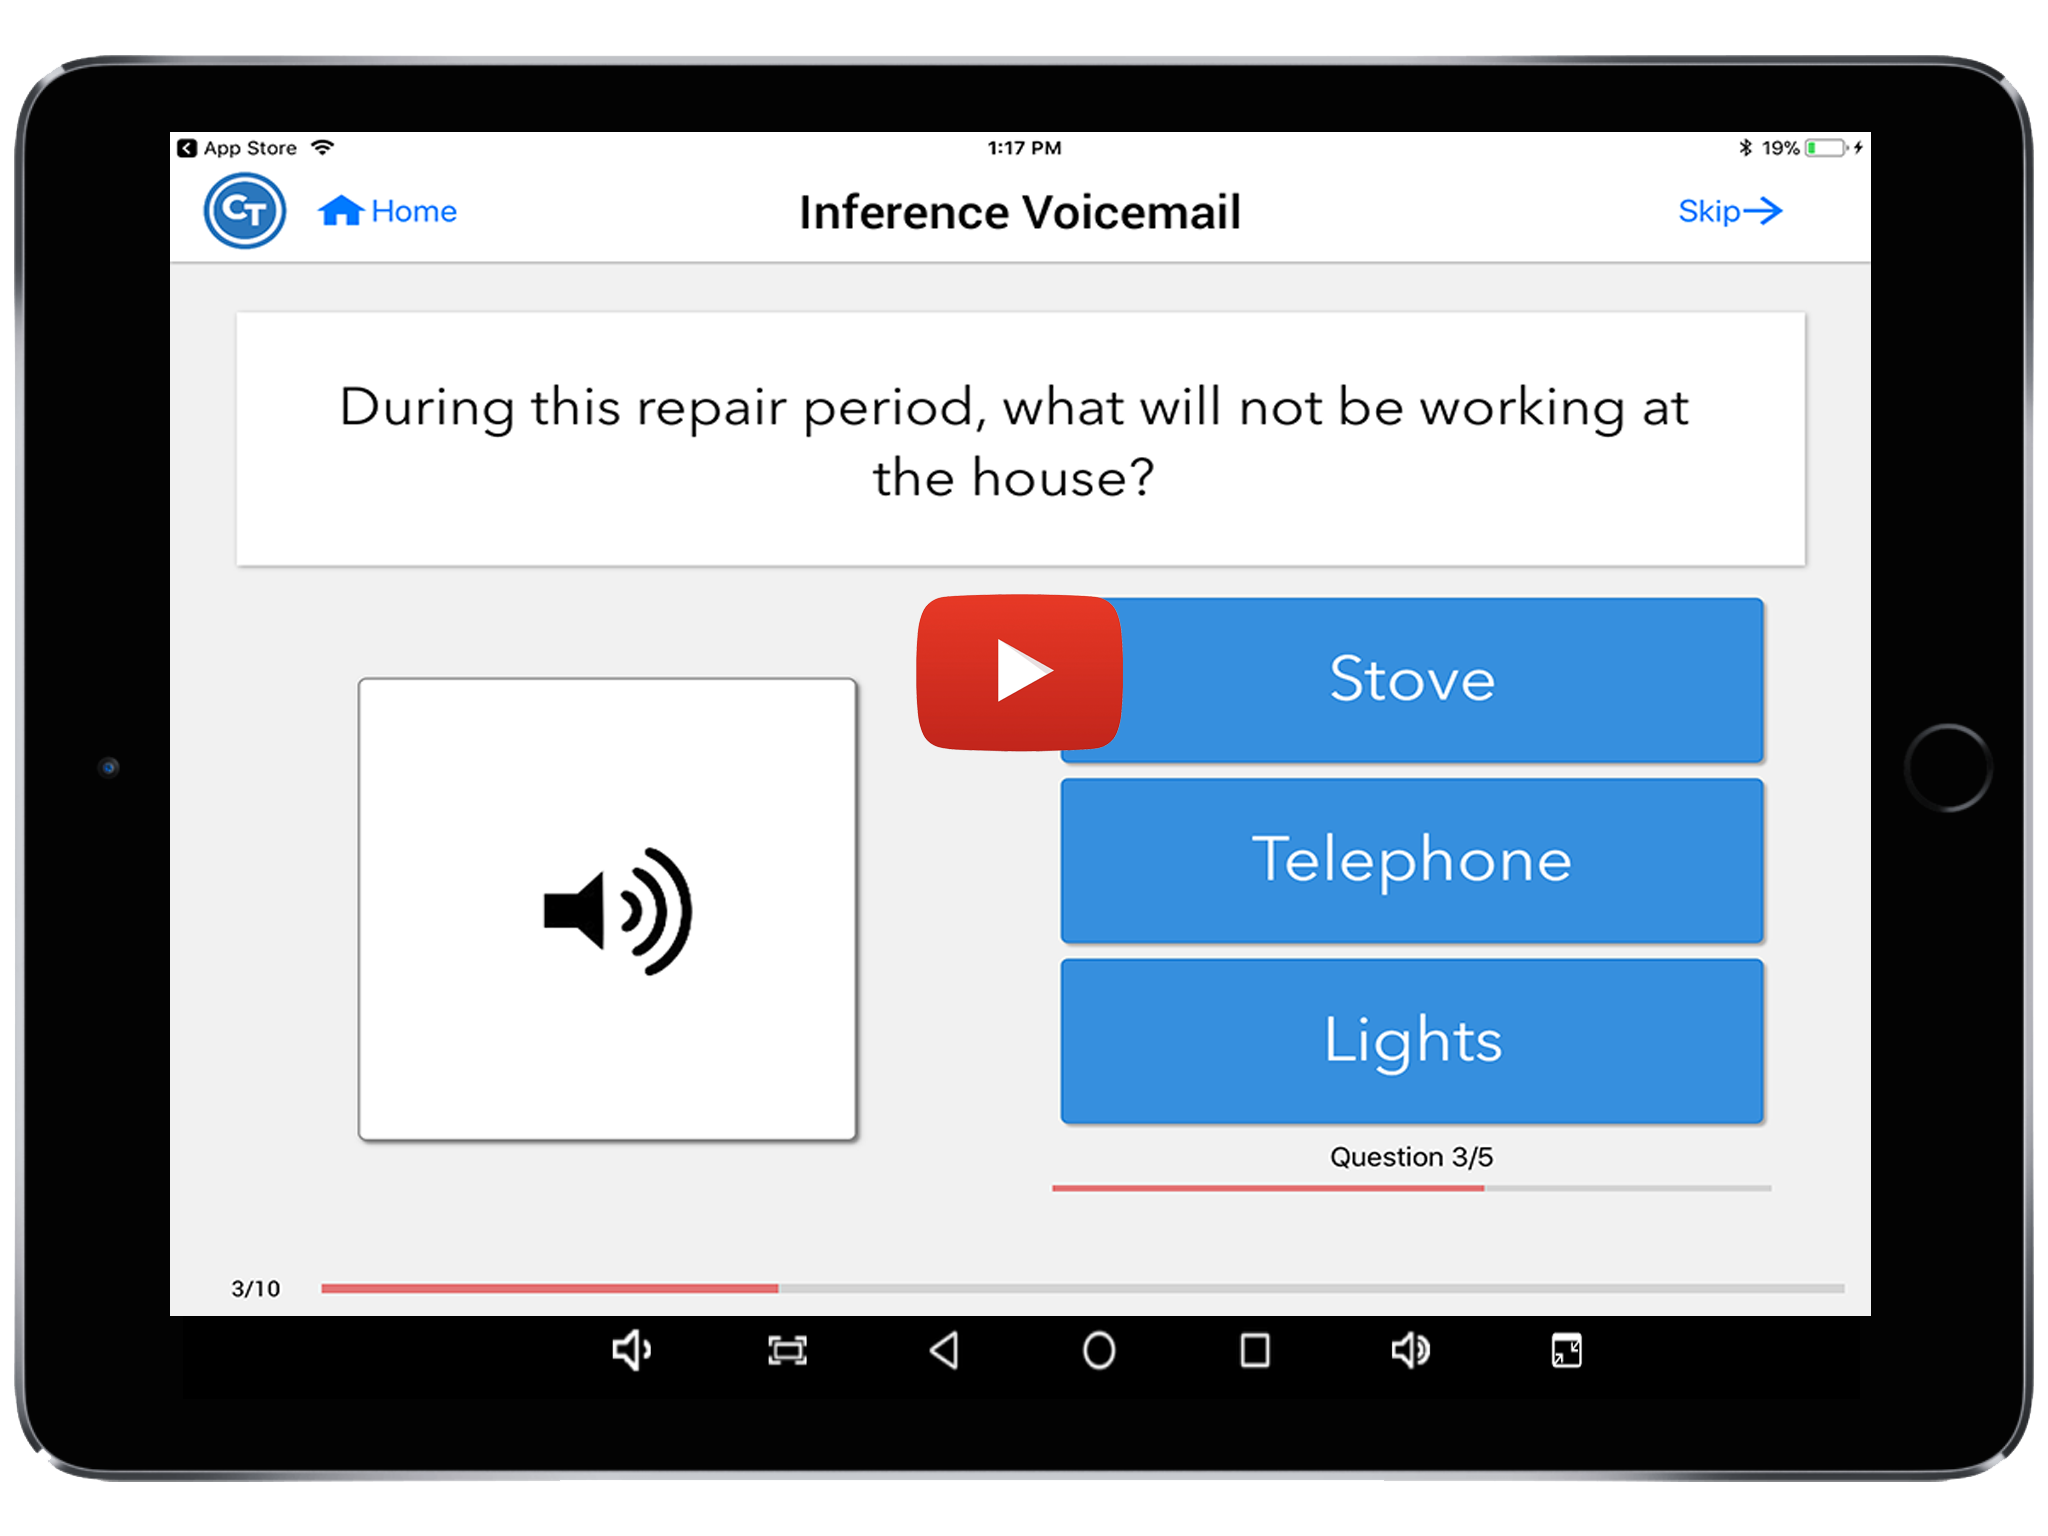 inference voicemail task